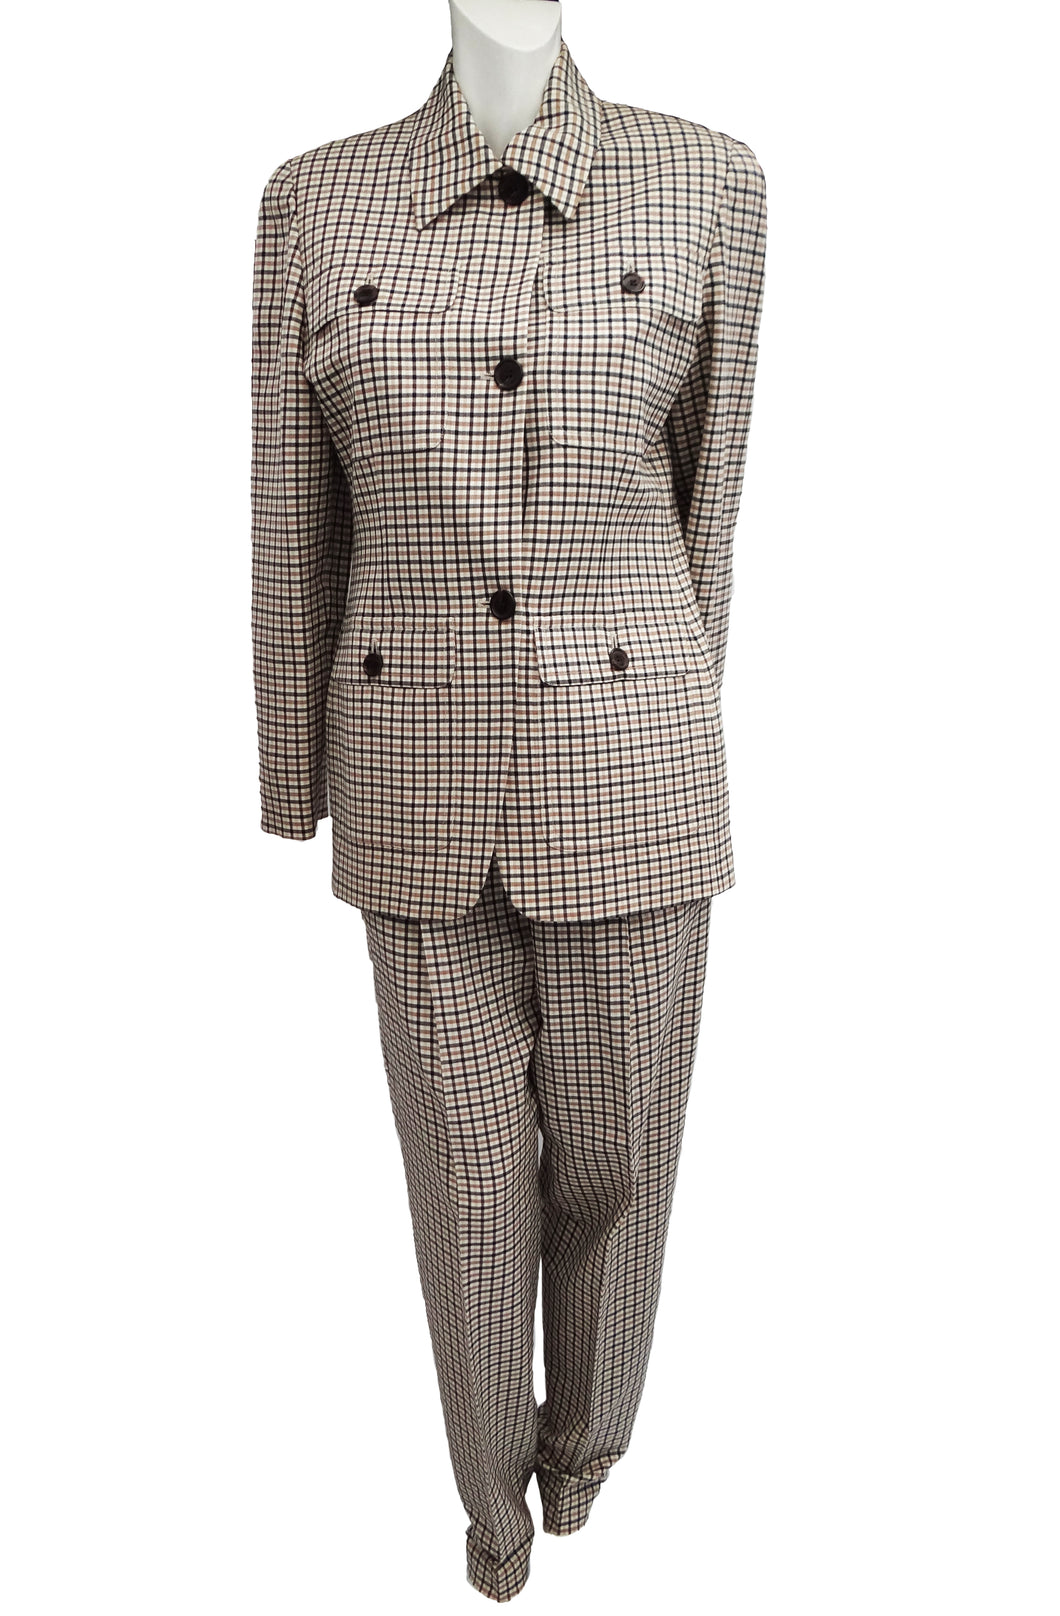 Michael Kors Gun Check Wool Trouser Suit, UK12-14